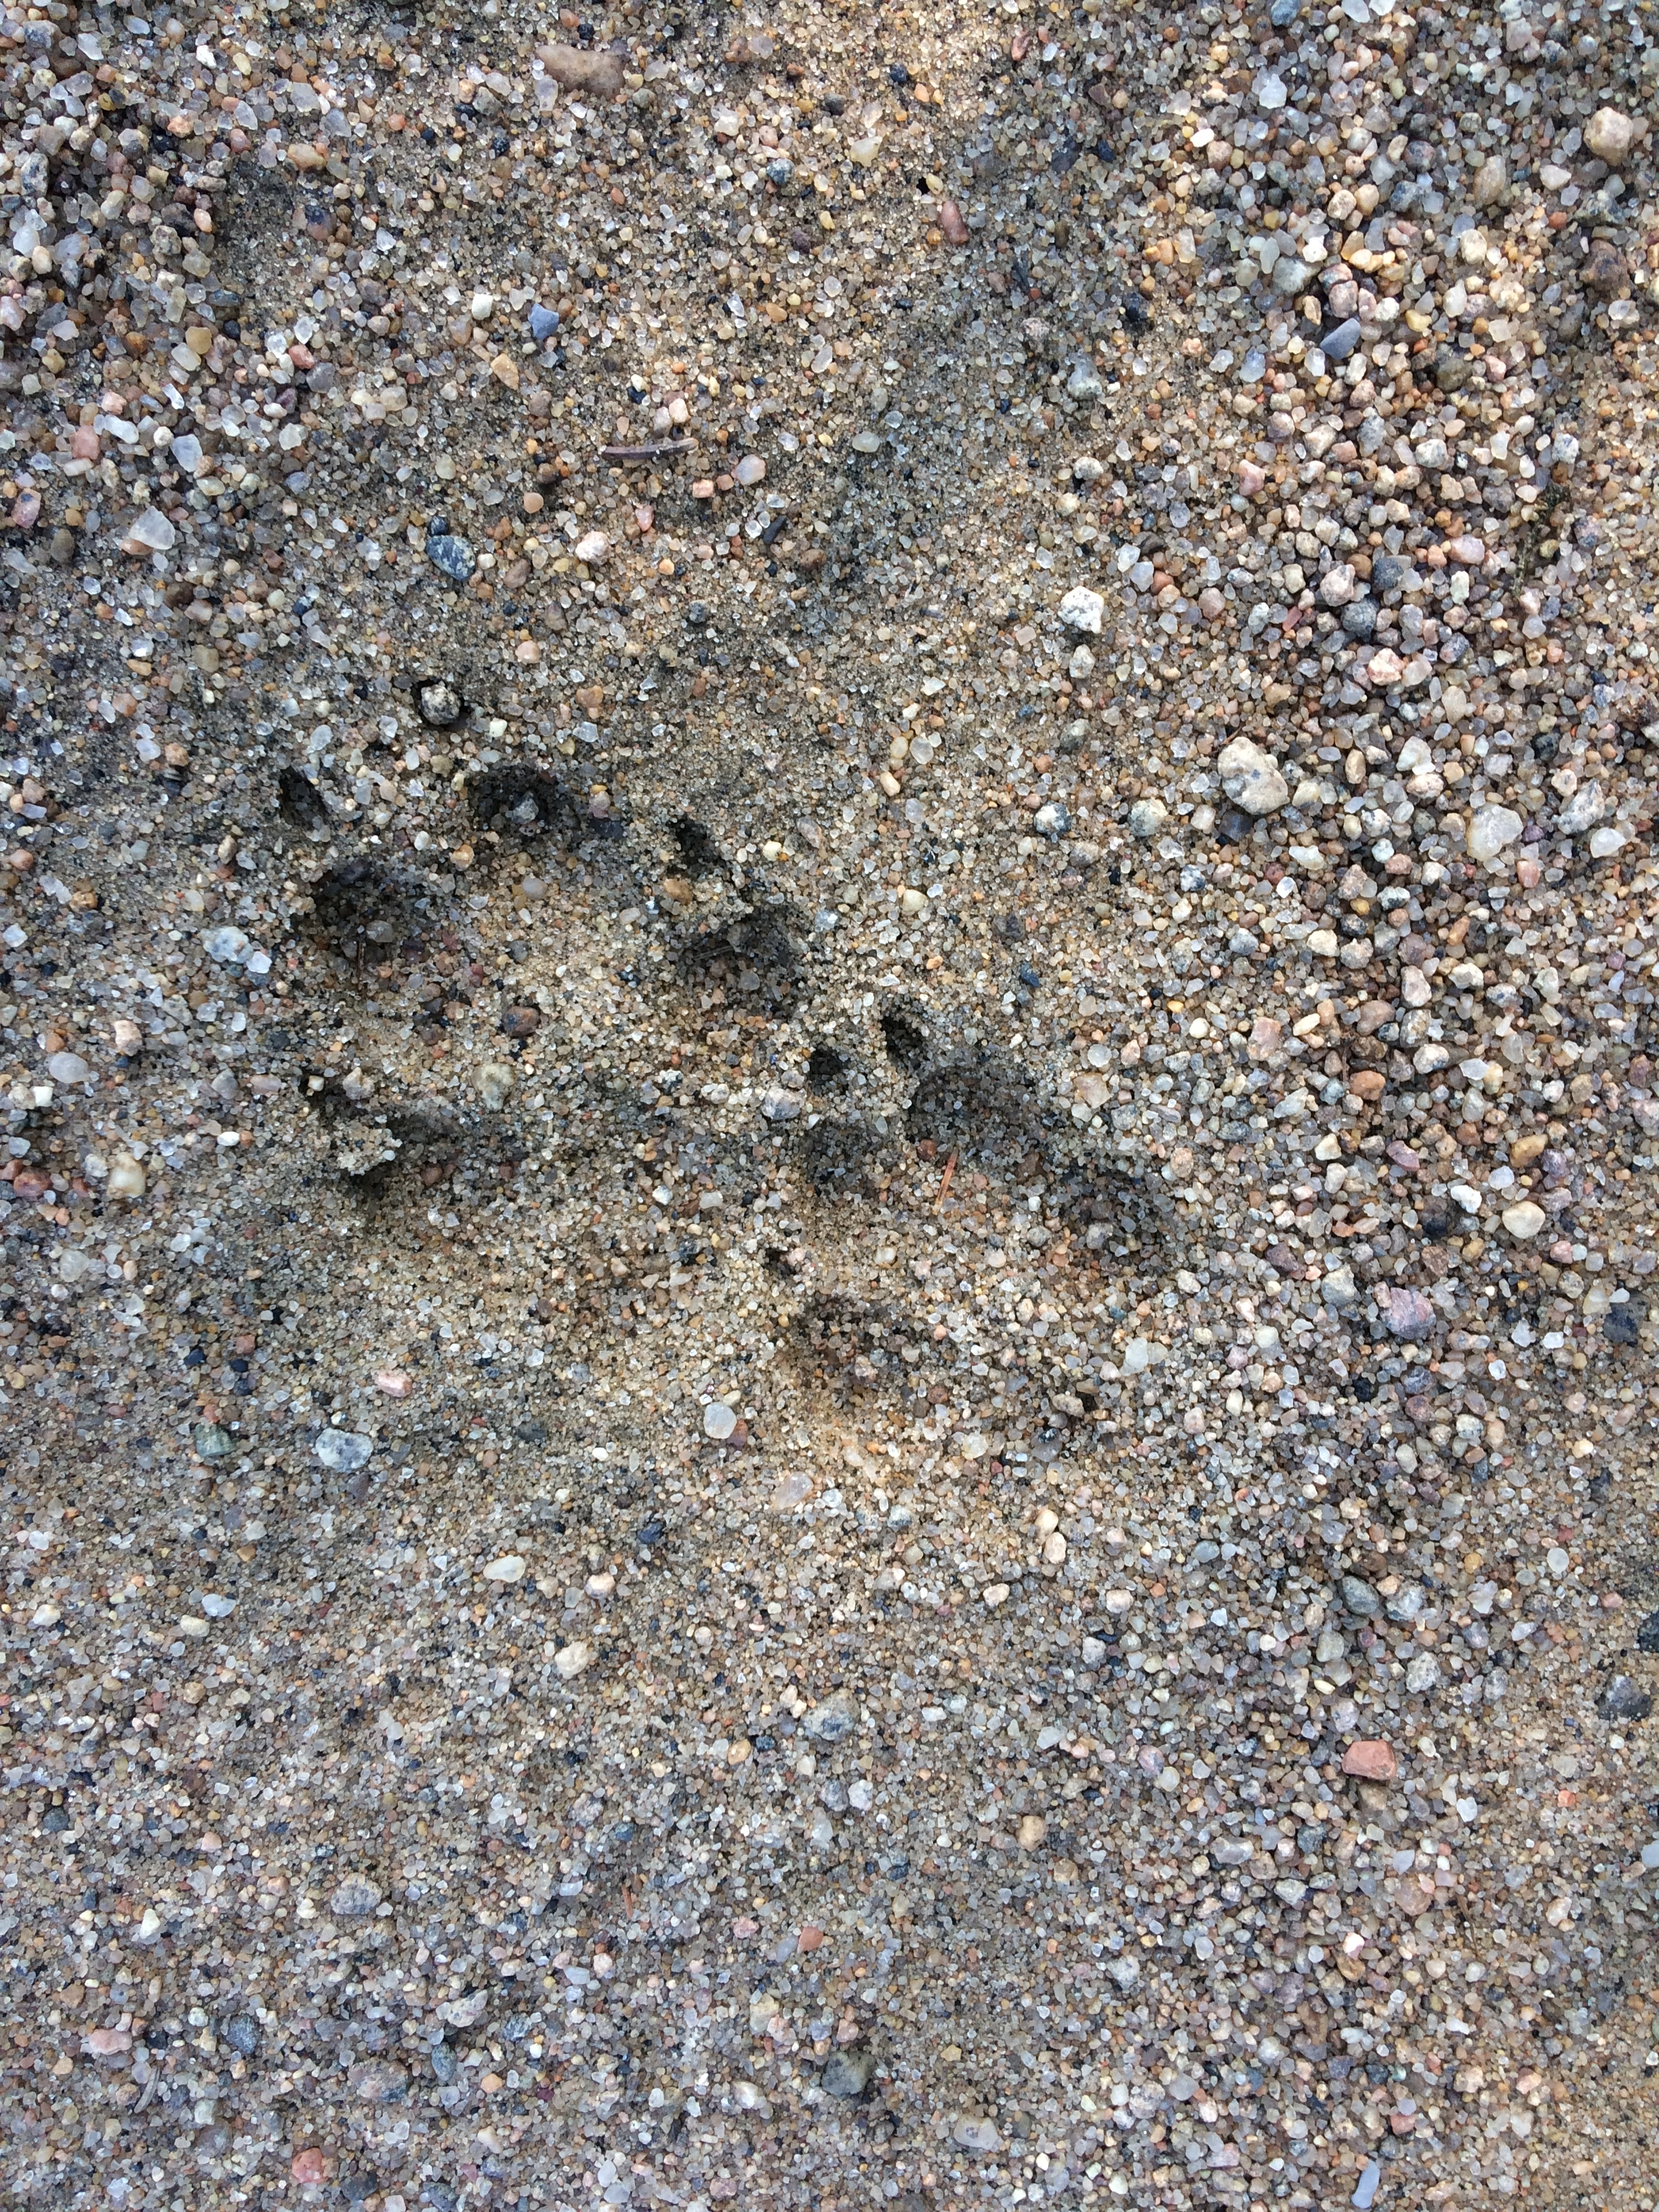 Coyote tracks on the road about a 1/4 mile from our camp. So much wildlife to observe! This place is so special!